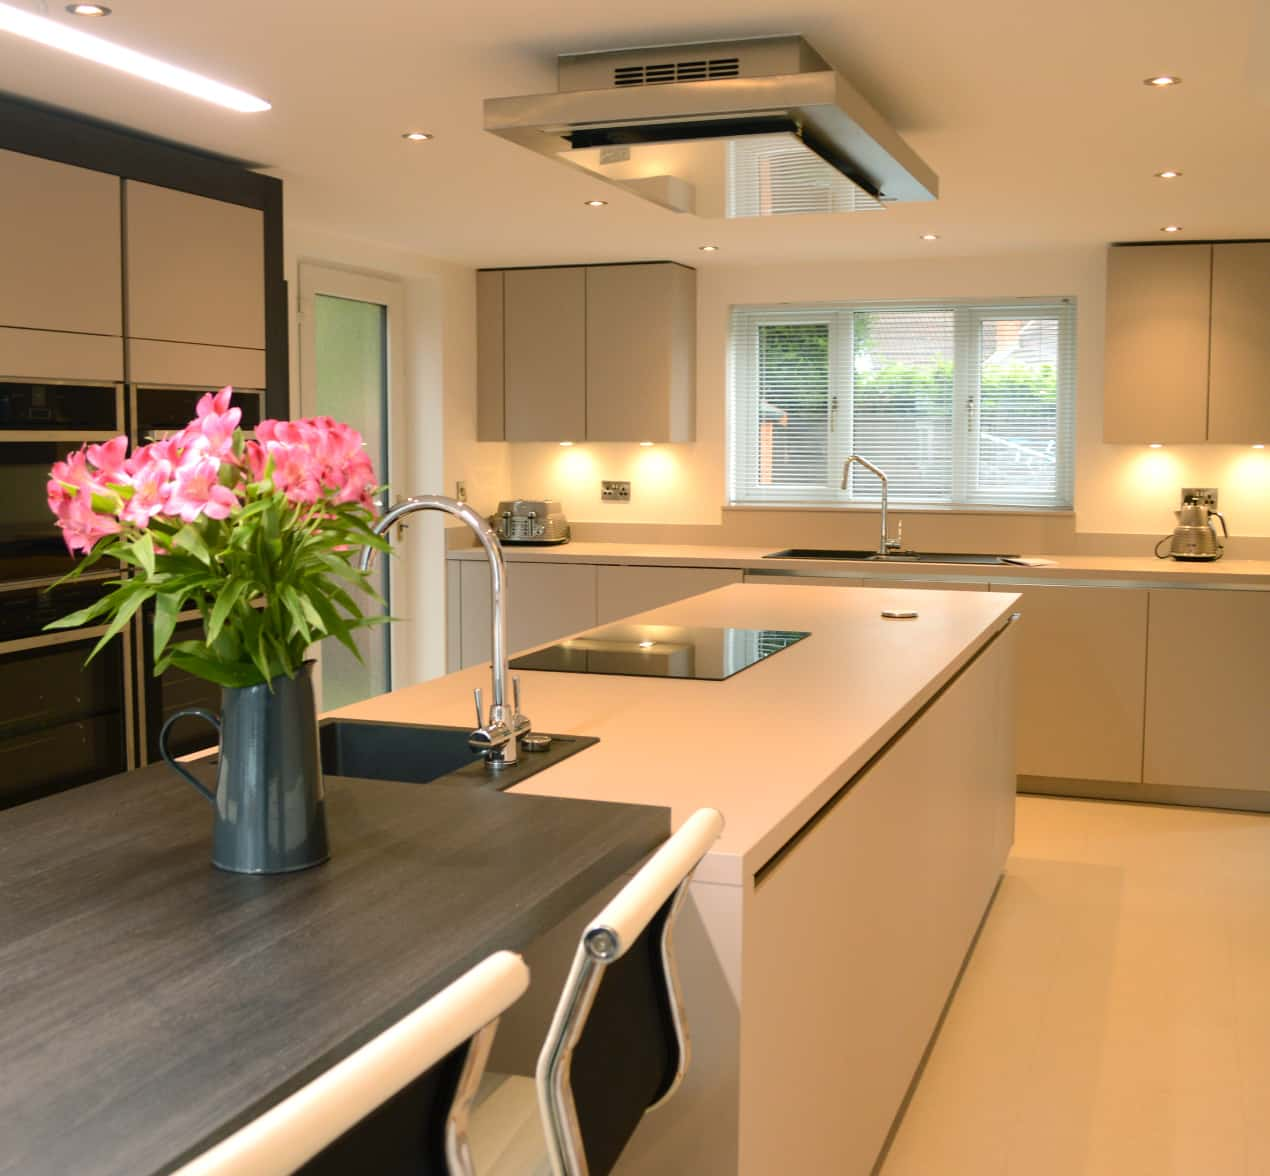 The Cashmere Touch For A Customer Kitchen In Wilmslow